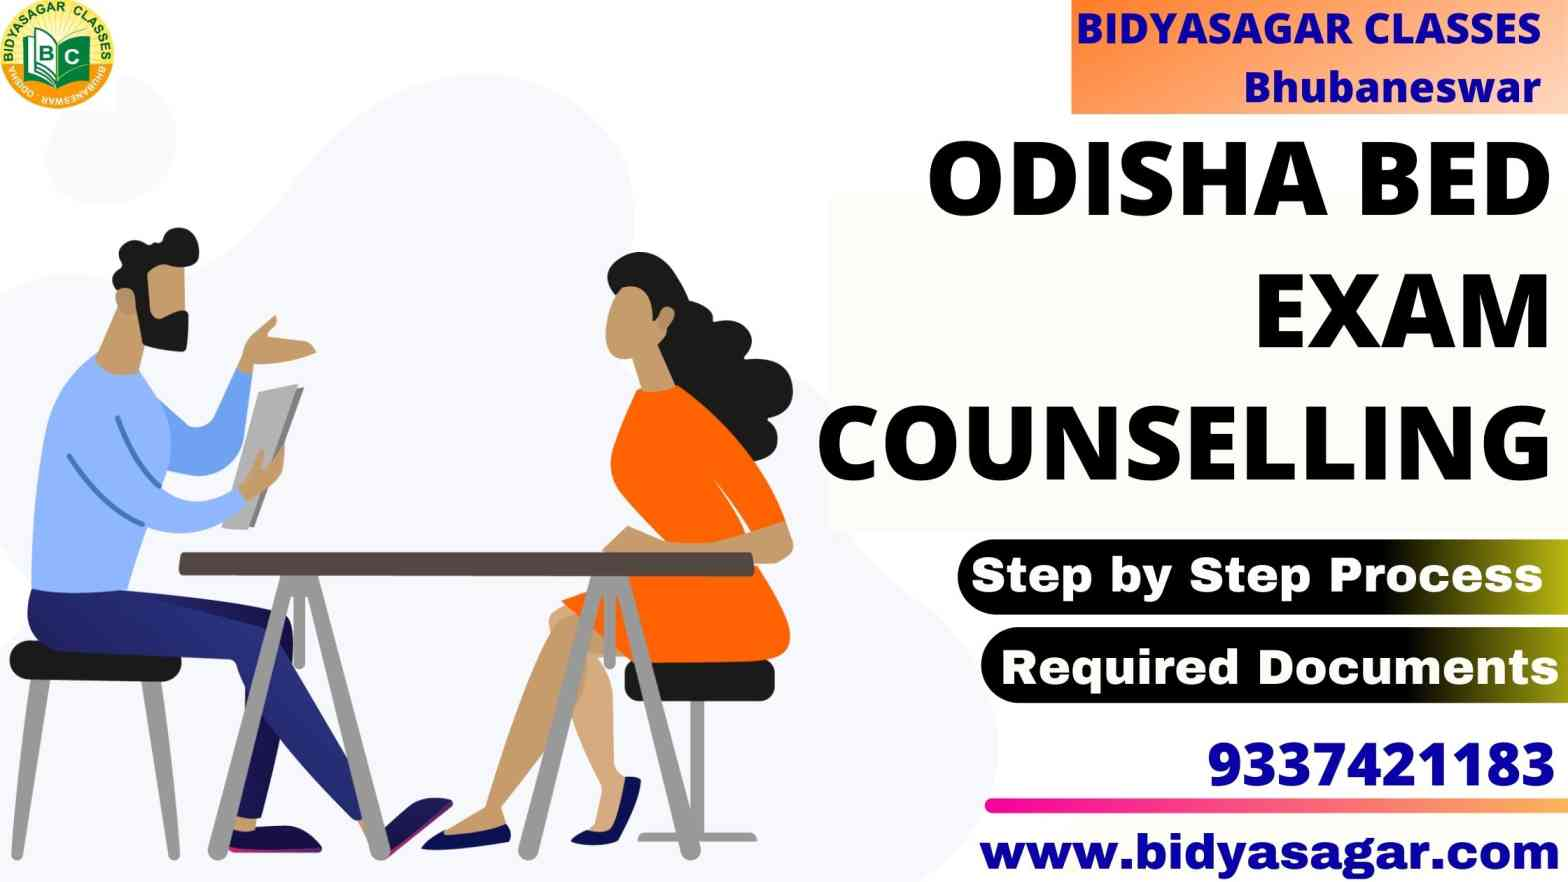 Odisha State B.Ed Entrance 2021 Exam Counselling